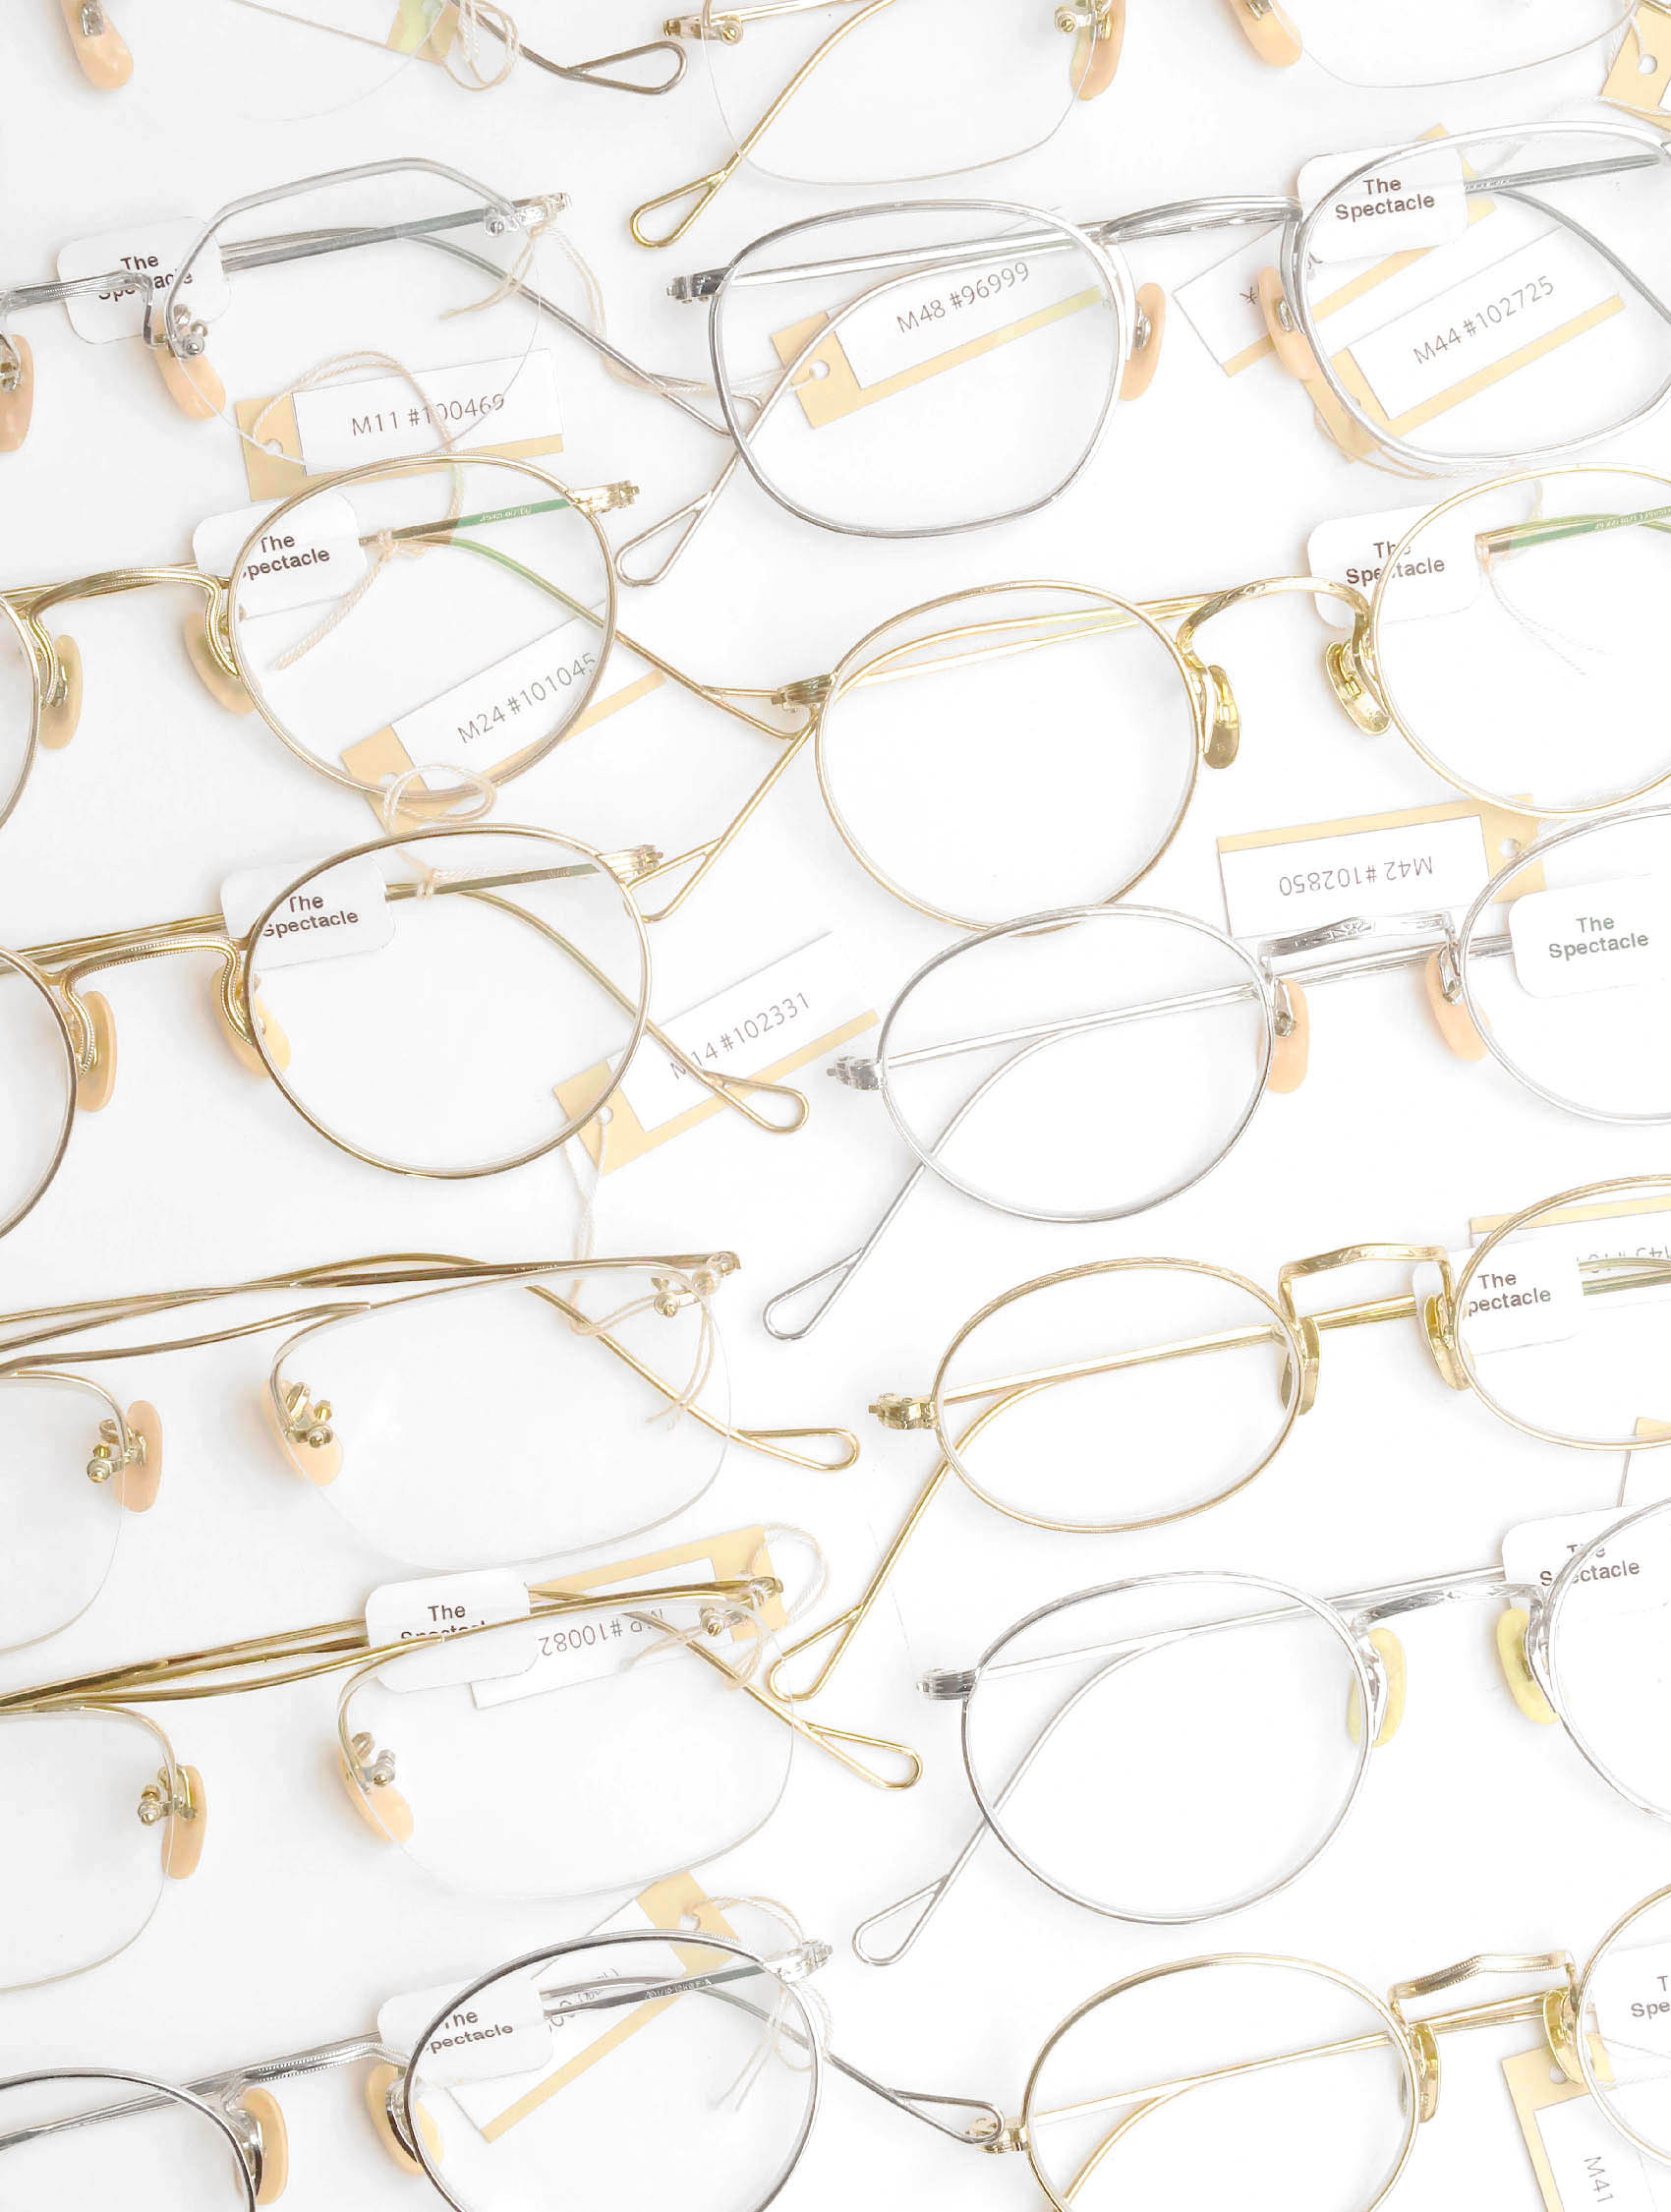 The Spectacle Middle-size 1920s-1940s Gold-Filled-Frame